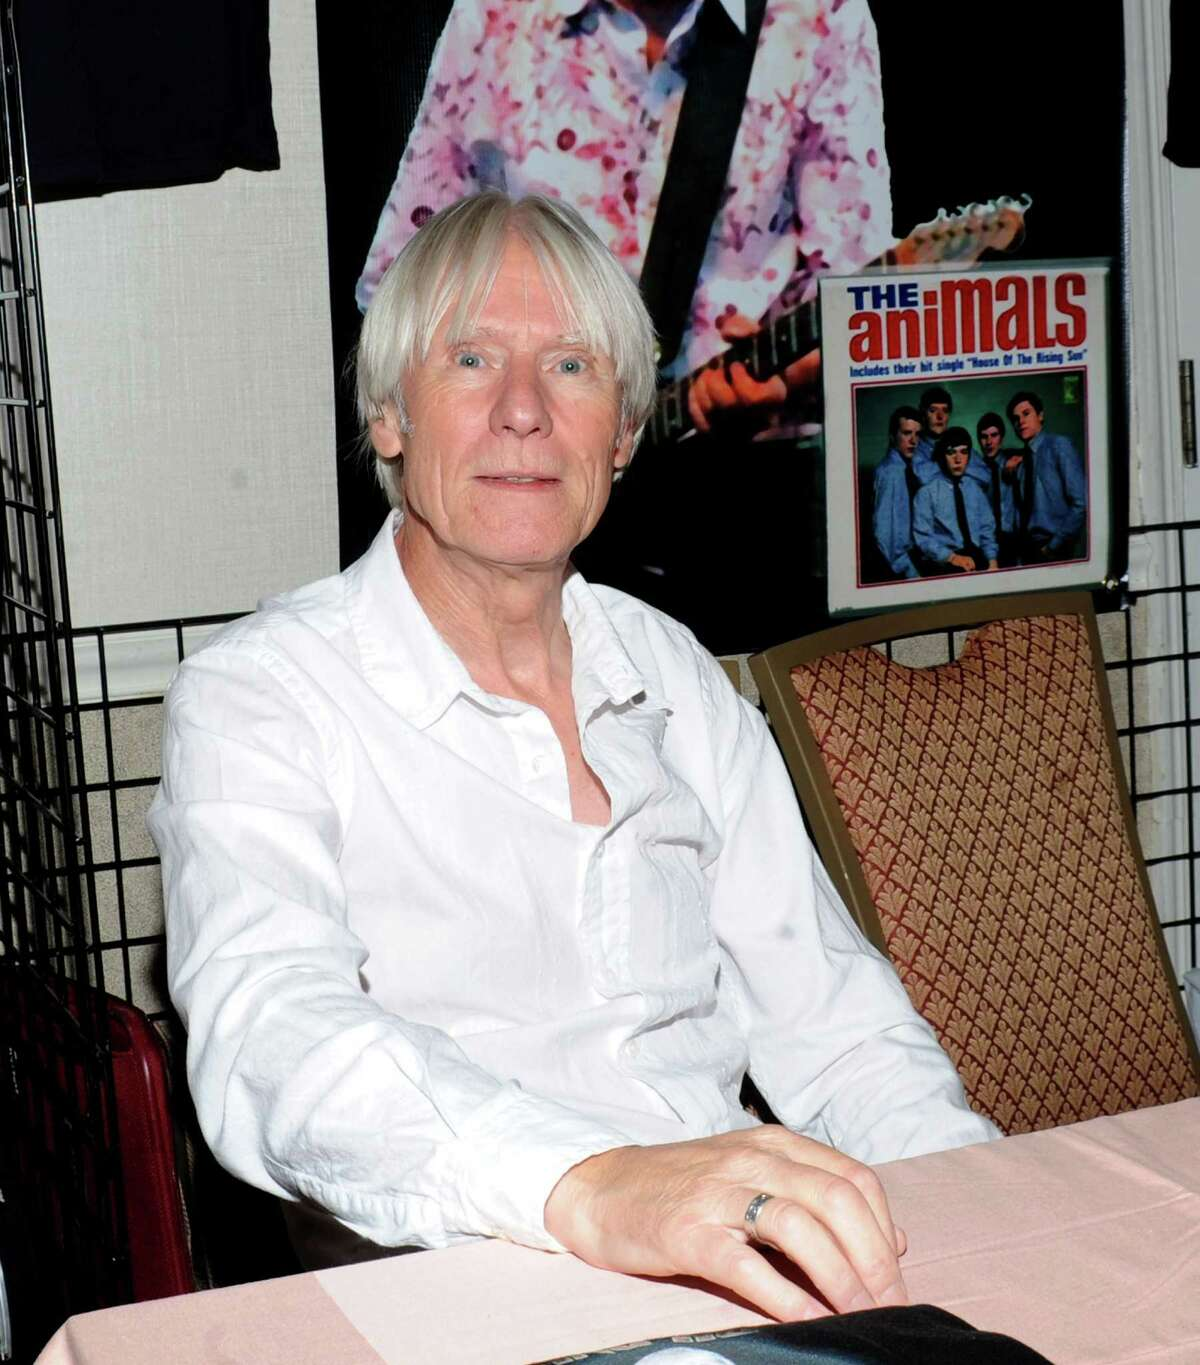 Hilton Valentine, of The Animals, attends the 2010 Rock Con: The National Rock & Roll Fan Fest at the Sheraton Meadowlands Hotel & Conference Center in East Rutherford, N.J. Valentine will be in Danbury on Saturday, Aug. 15, for the